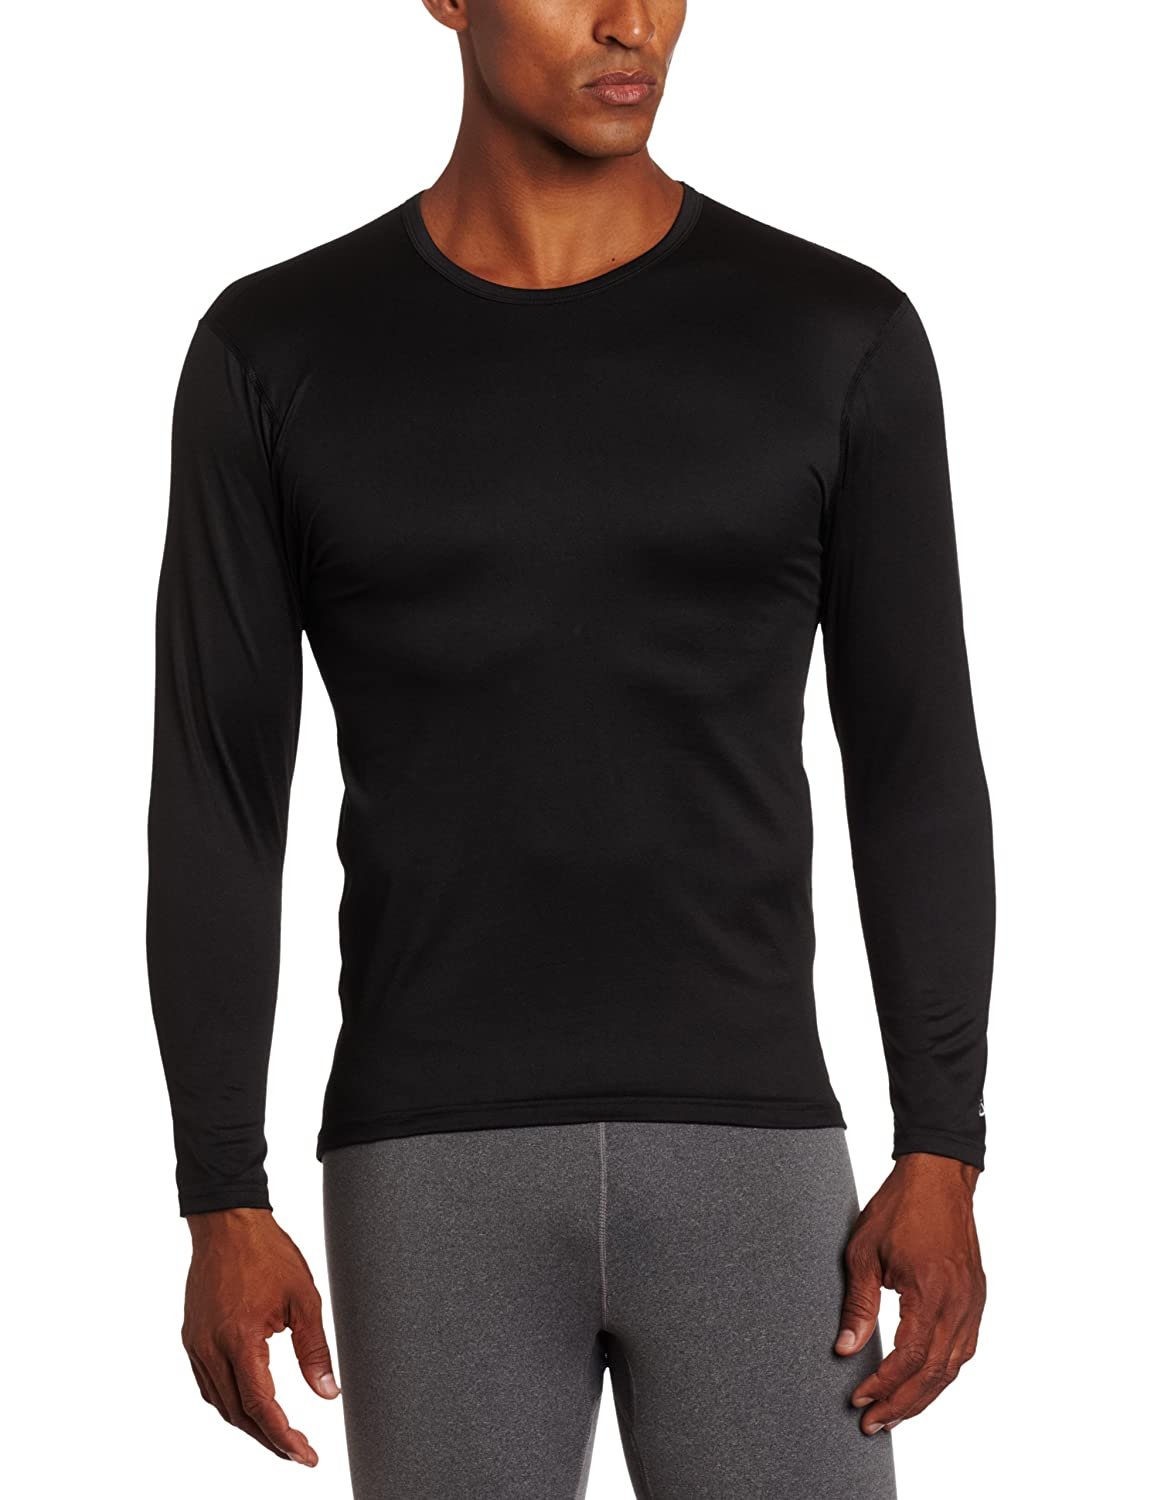 Duofold Men's Big-Tall Mid Weight Crew Thermal Top Hanesbrands - Duofold KMC7